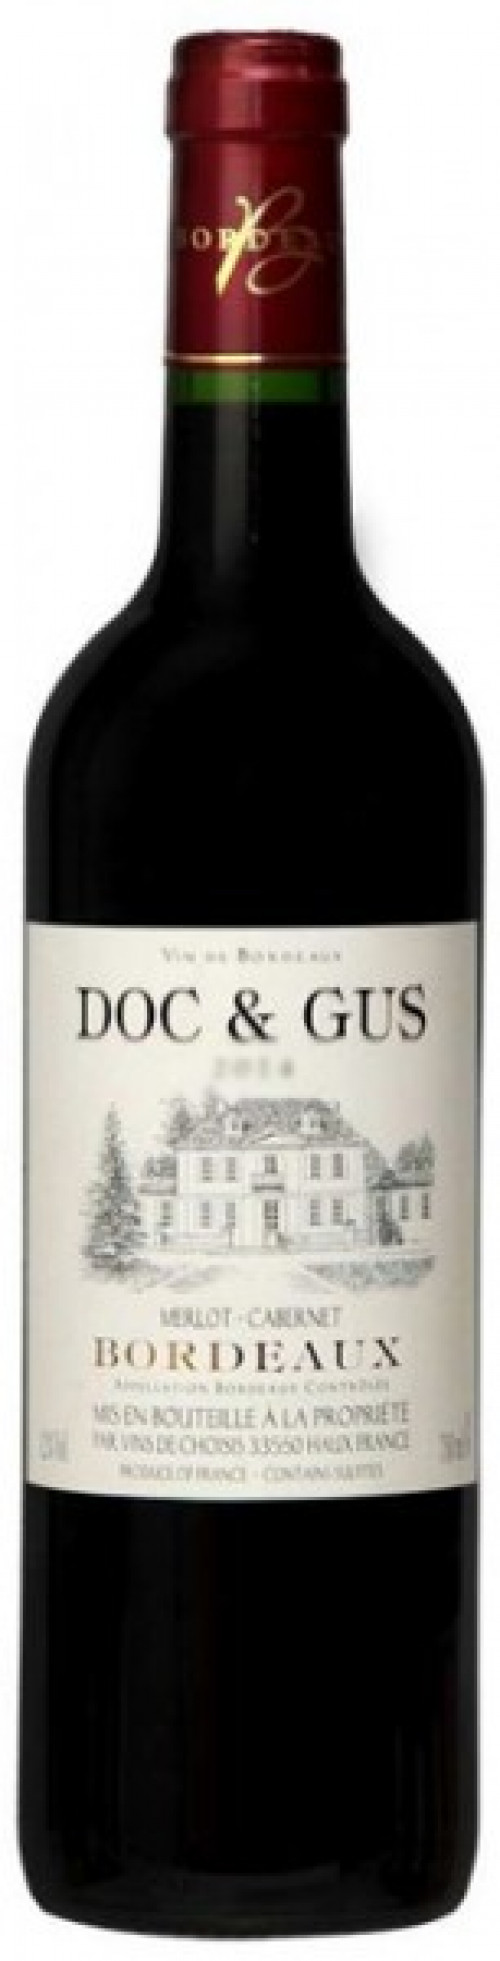 2017 Doc & Gus Red Bordeaux 750ml